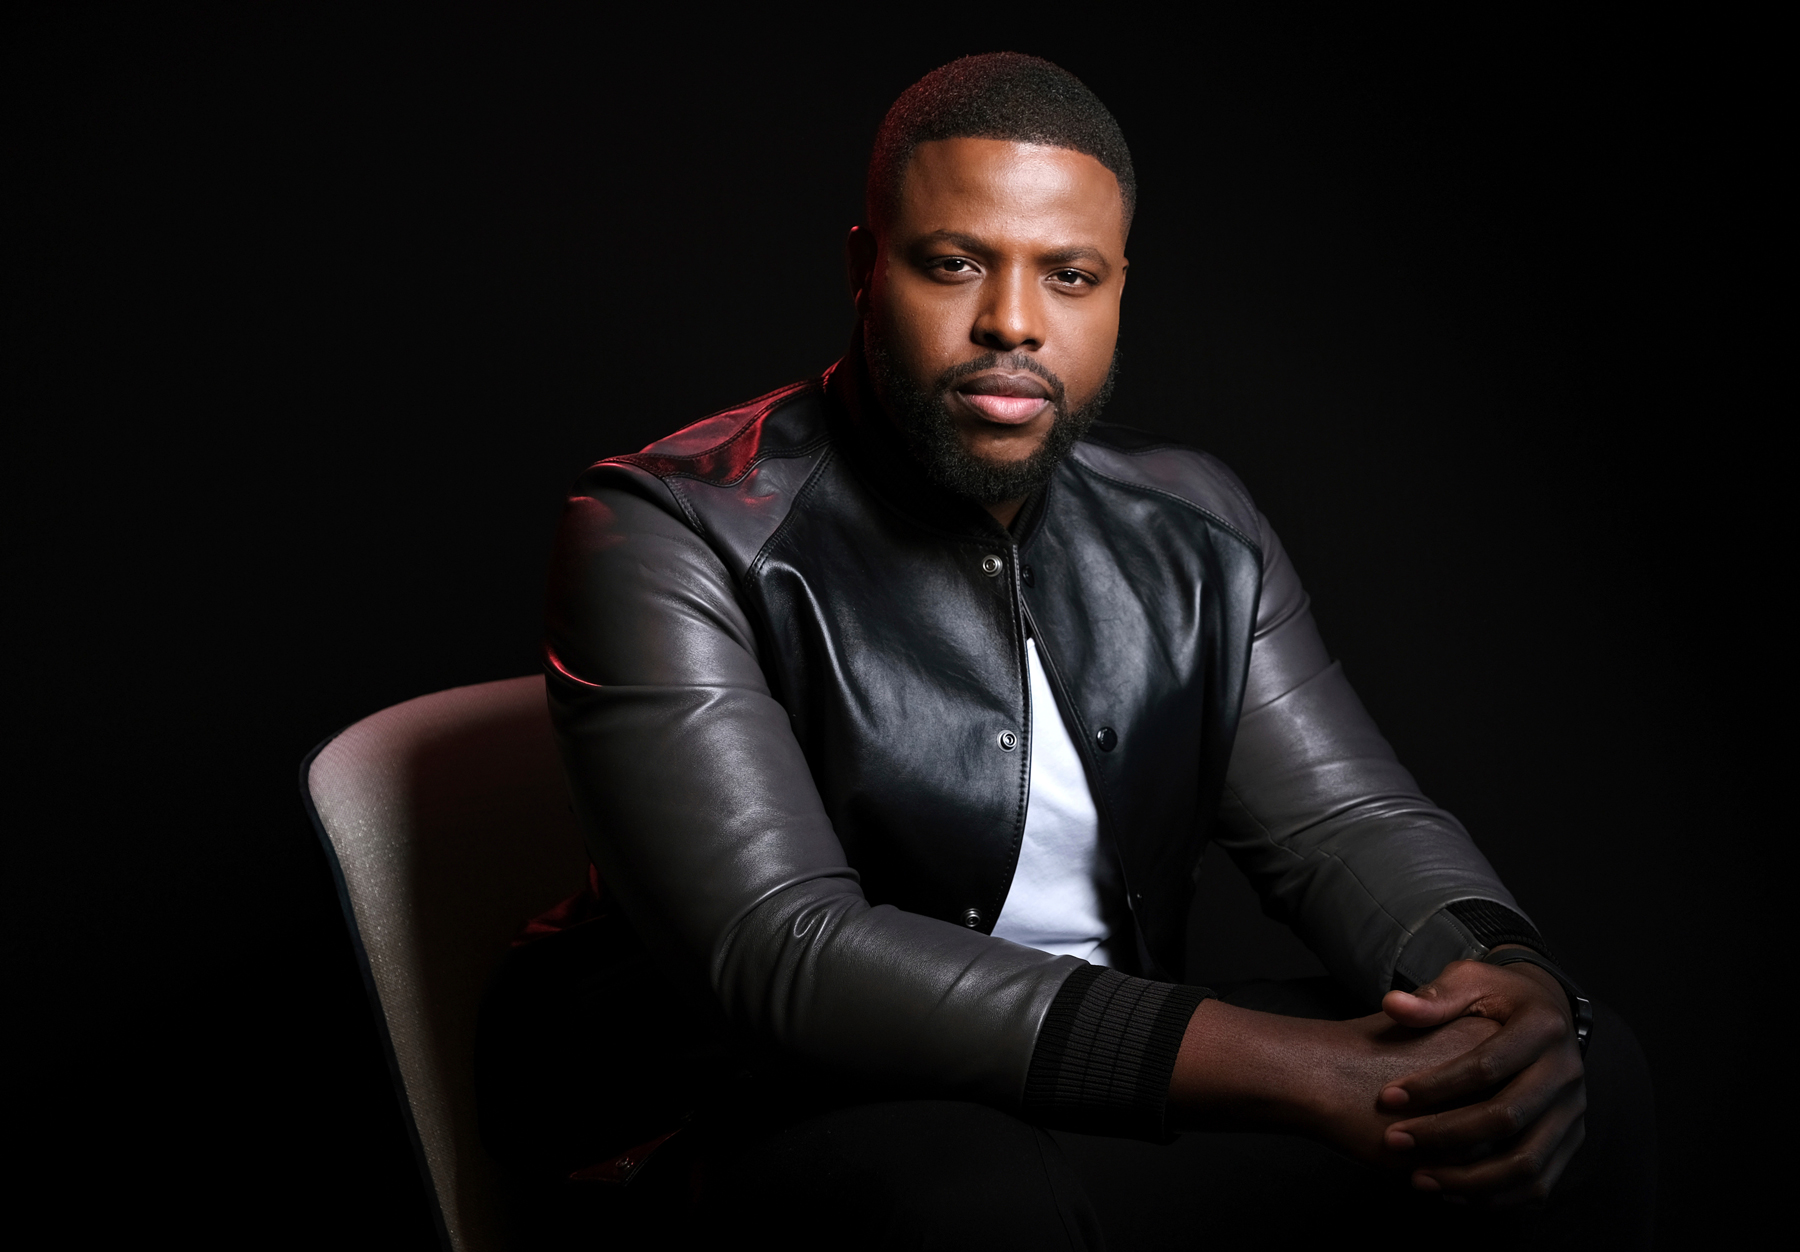 """This photo shows Winston Duke at the """"Us"""" Portrait Session, West Hollywood, March 12th 2019"""